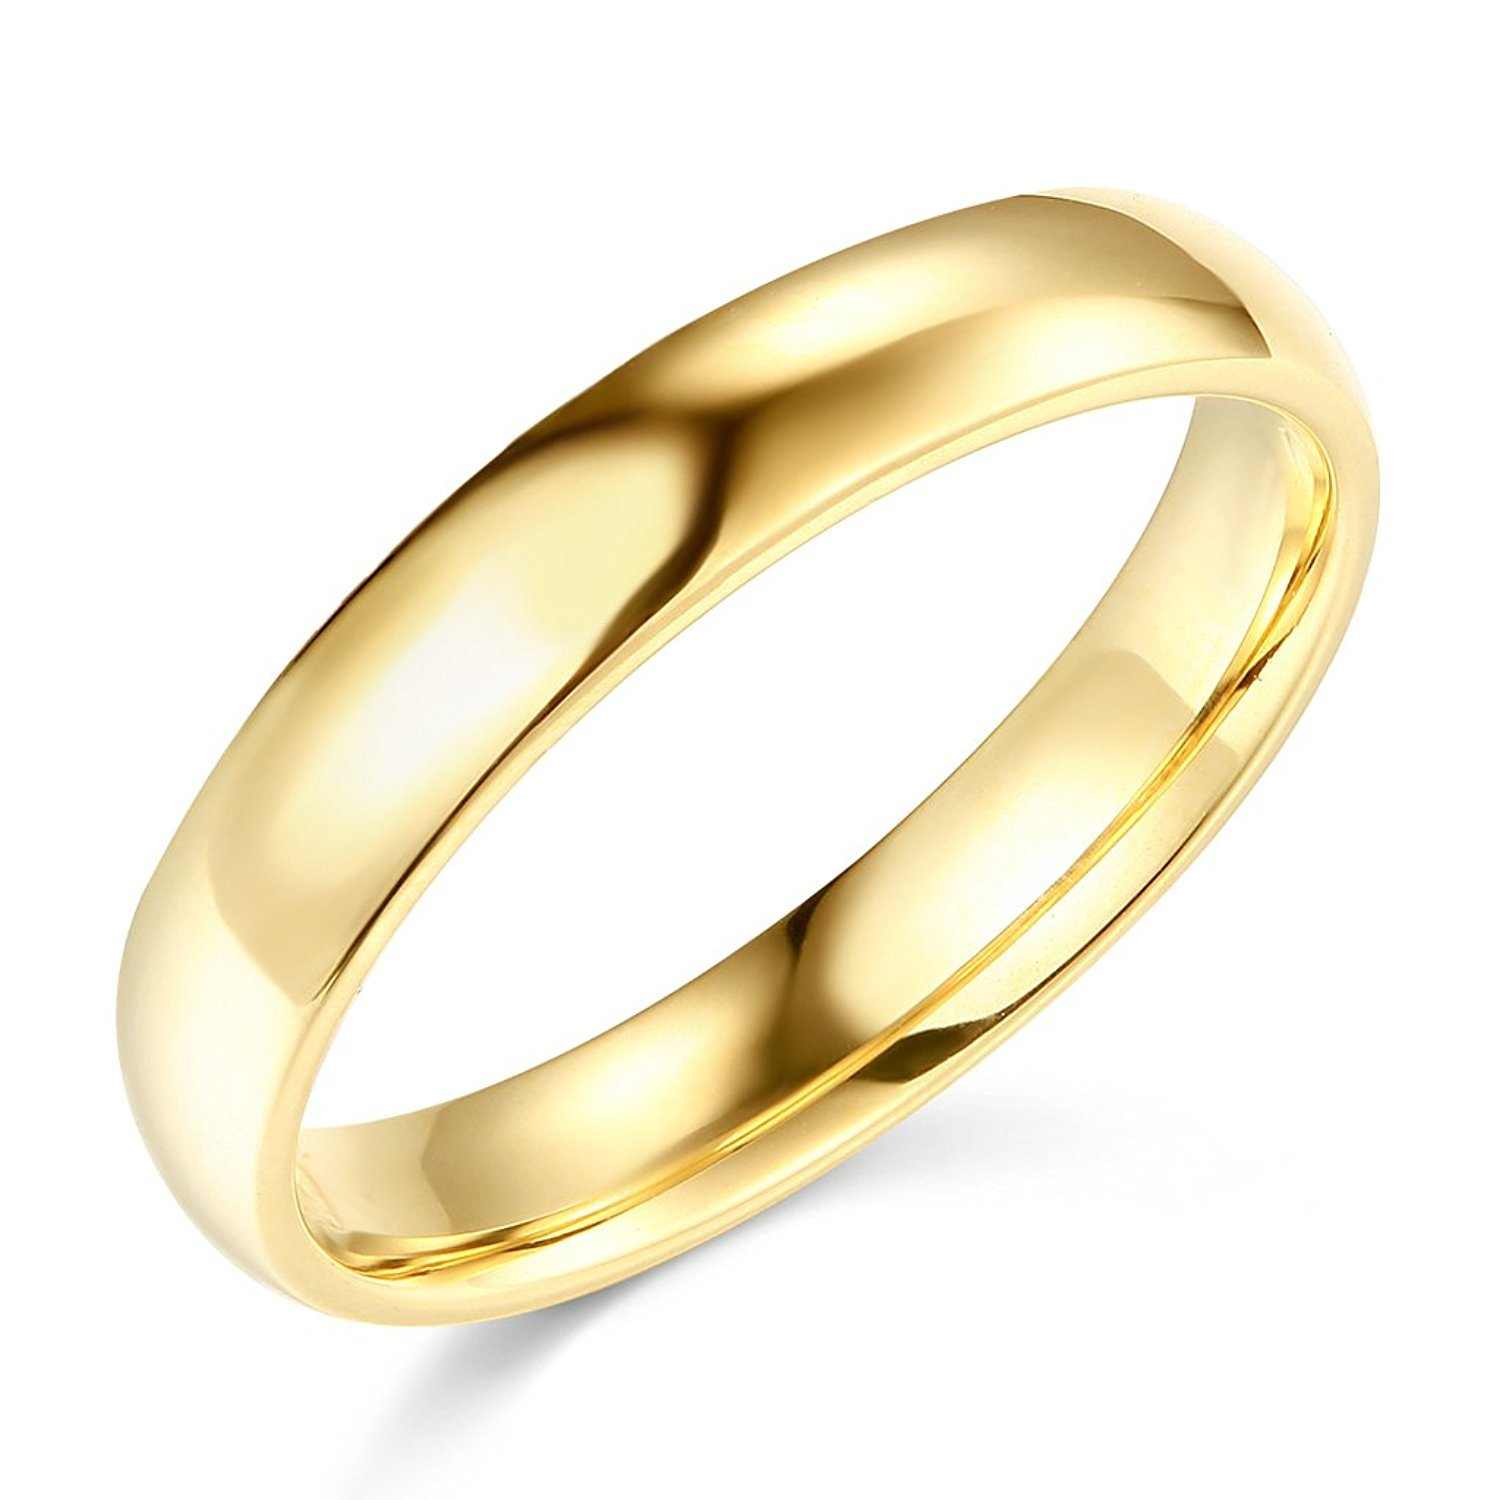 Polished Finish Plain Wedding Band Ring Solid 14k Yellow Gold Regular Fit, 4 mm GemApex GBR040A